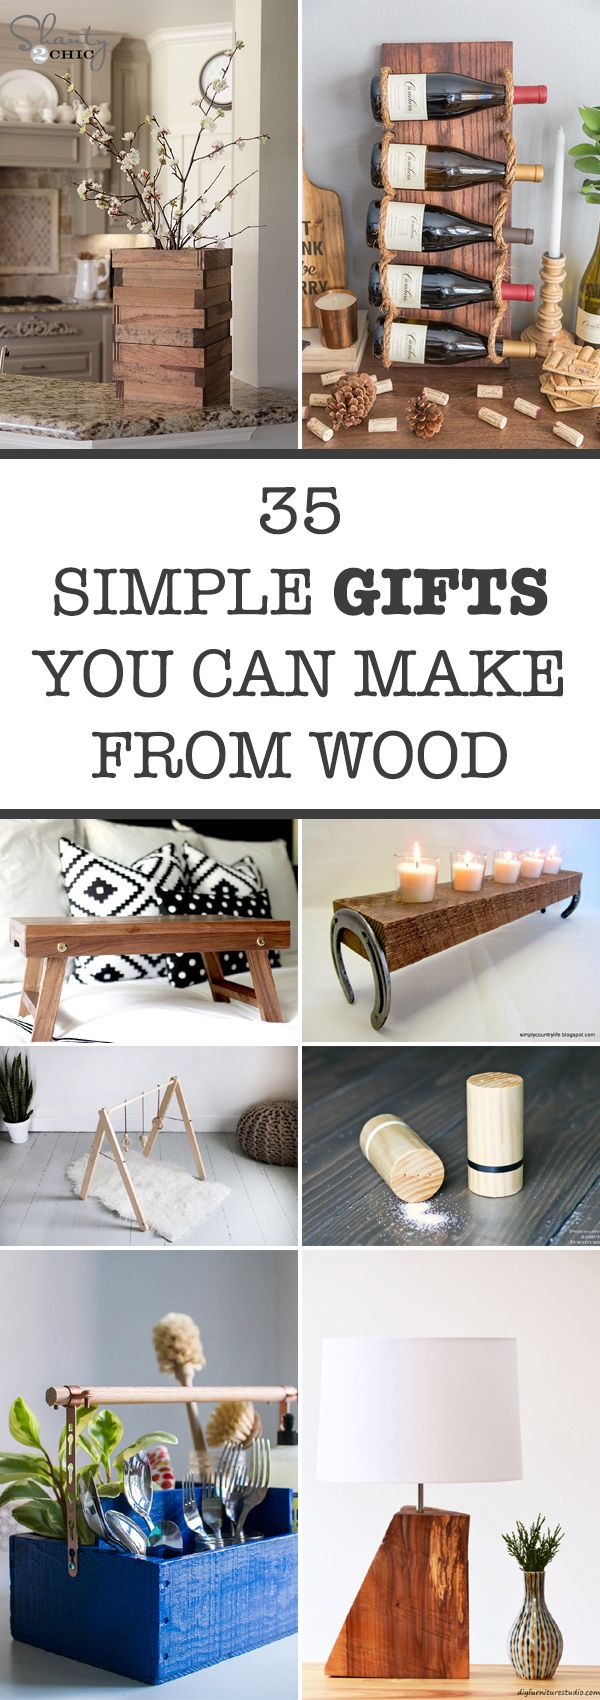 35 Simple Gifts You Can Make From Wood Wooden Diy Woodworking Projects Furniture Woodworking Projects That Sell